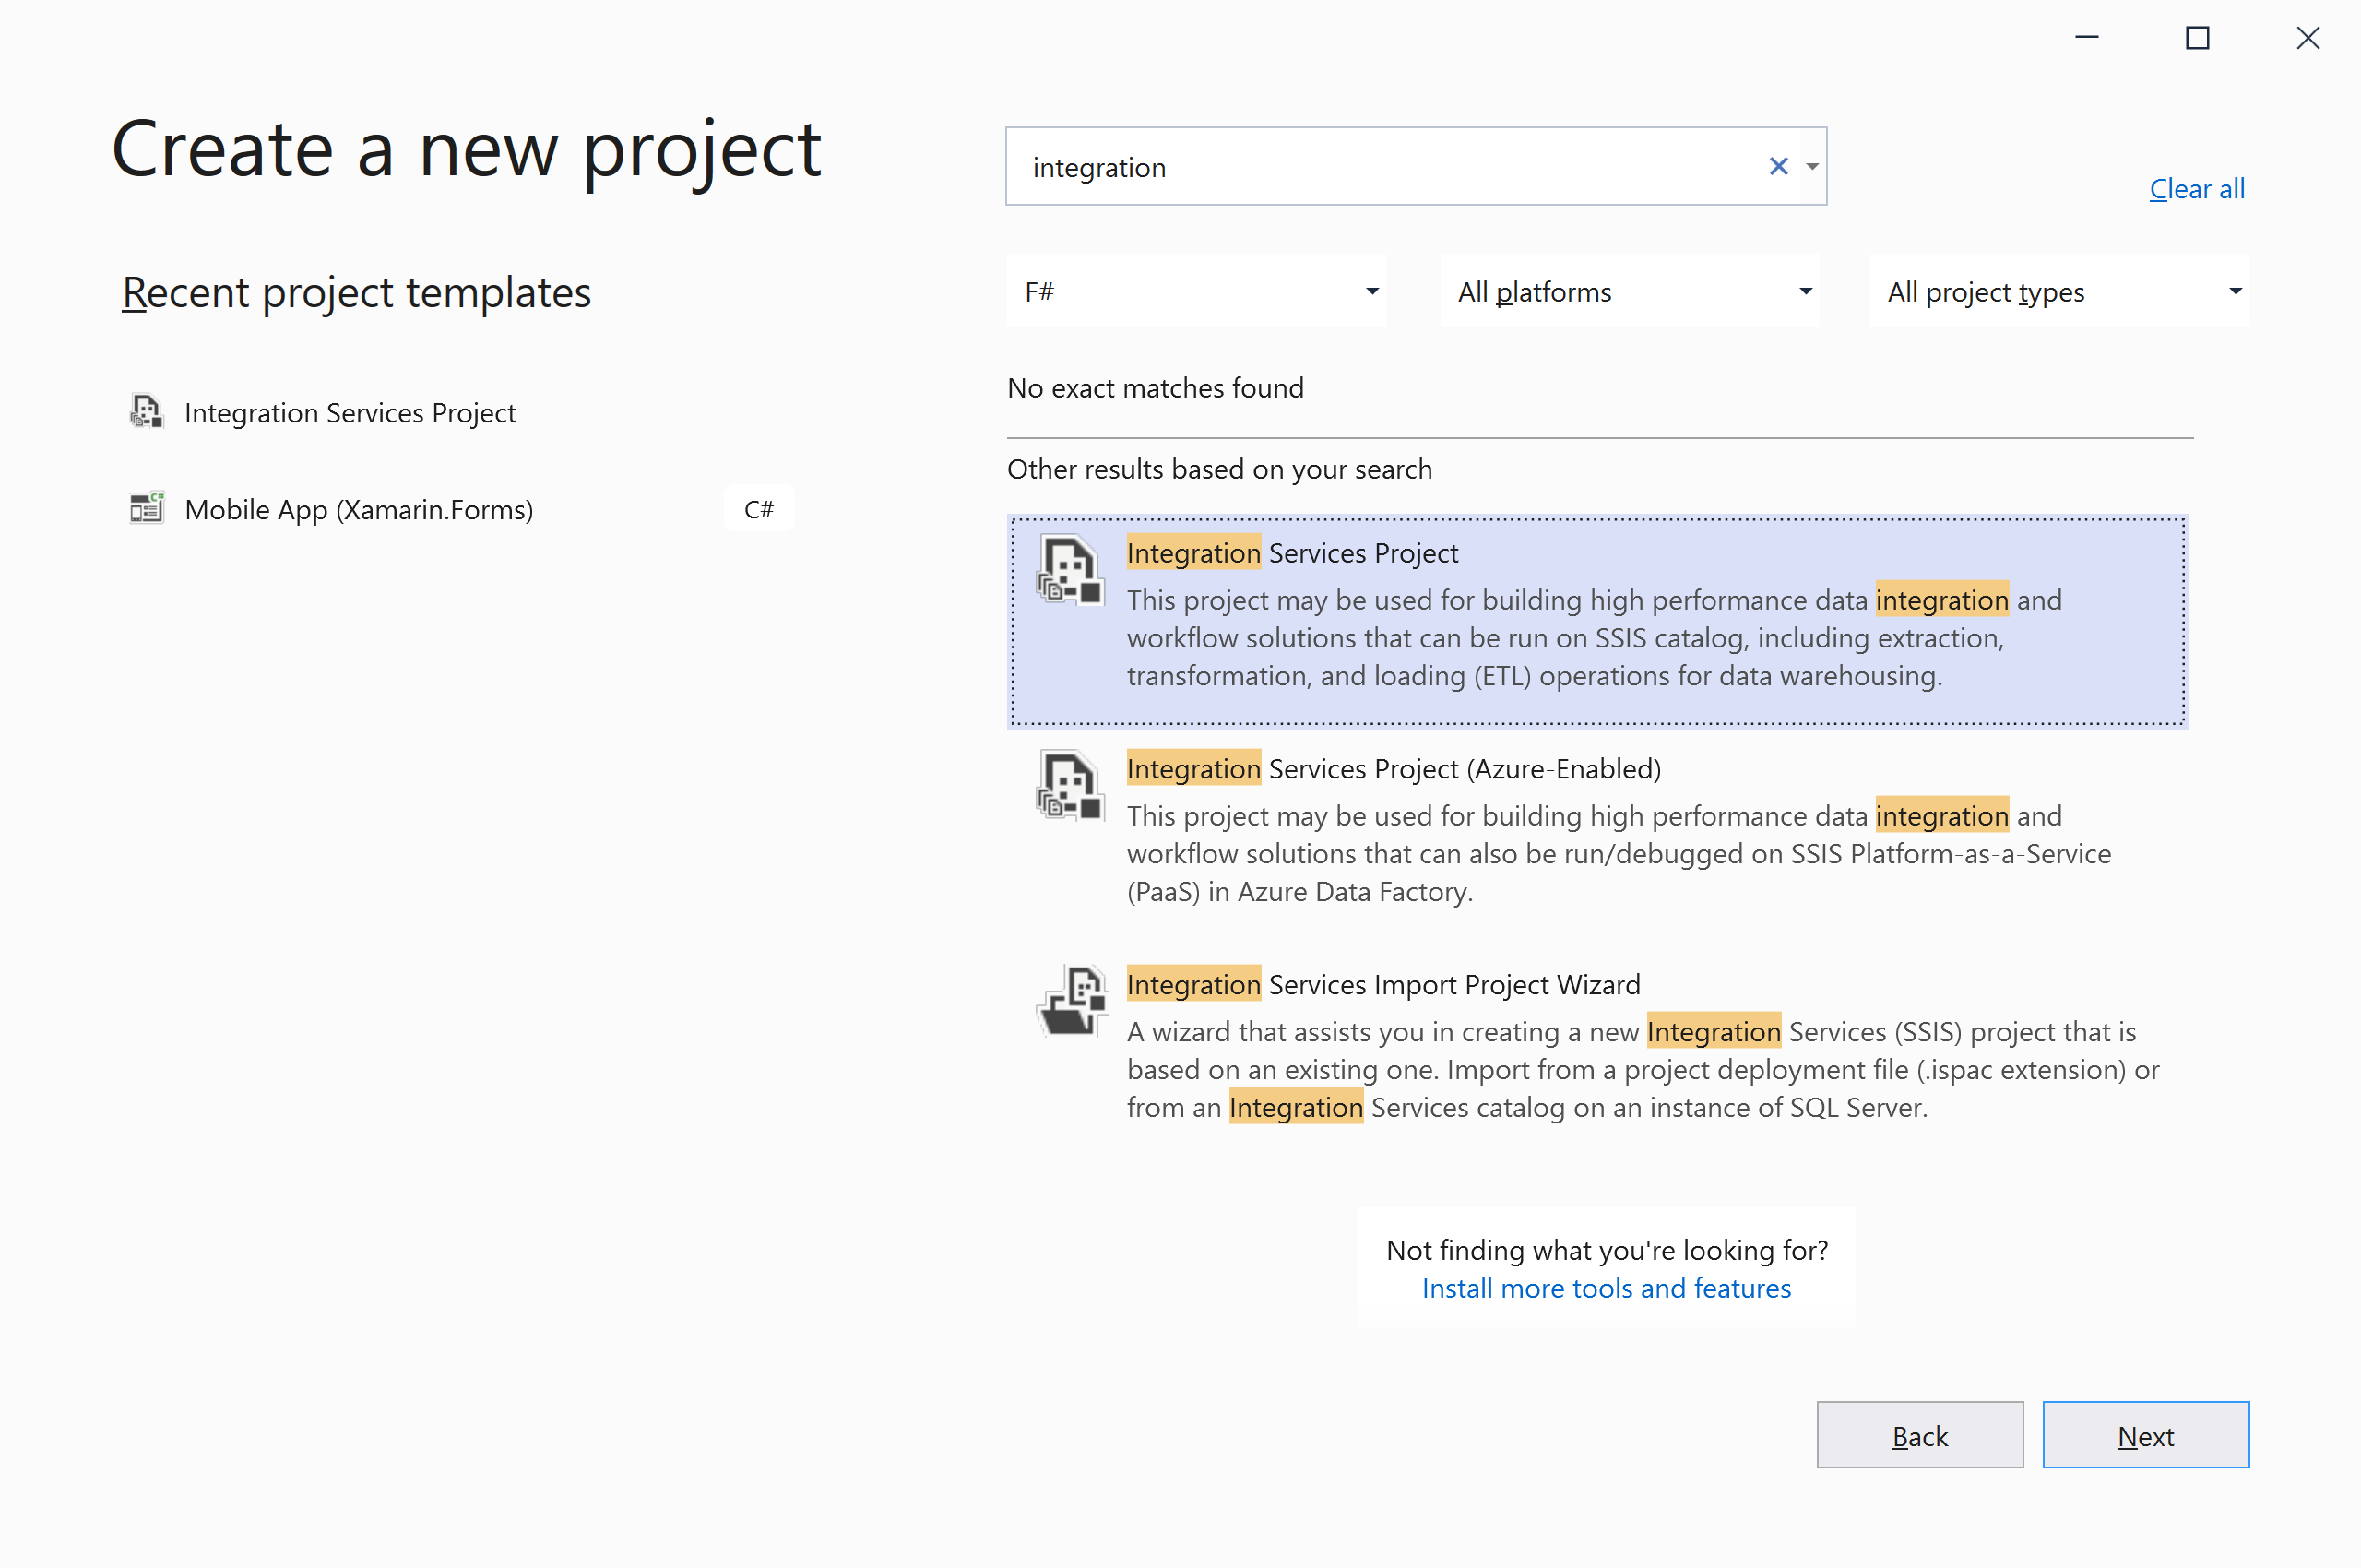 Choose Integration Services Project template